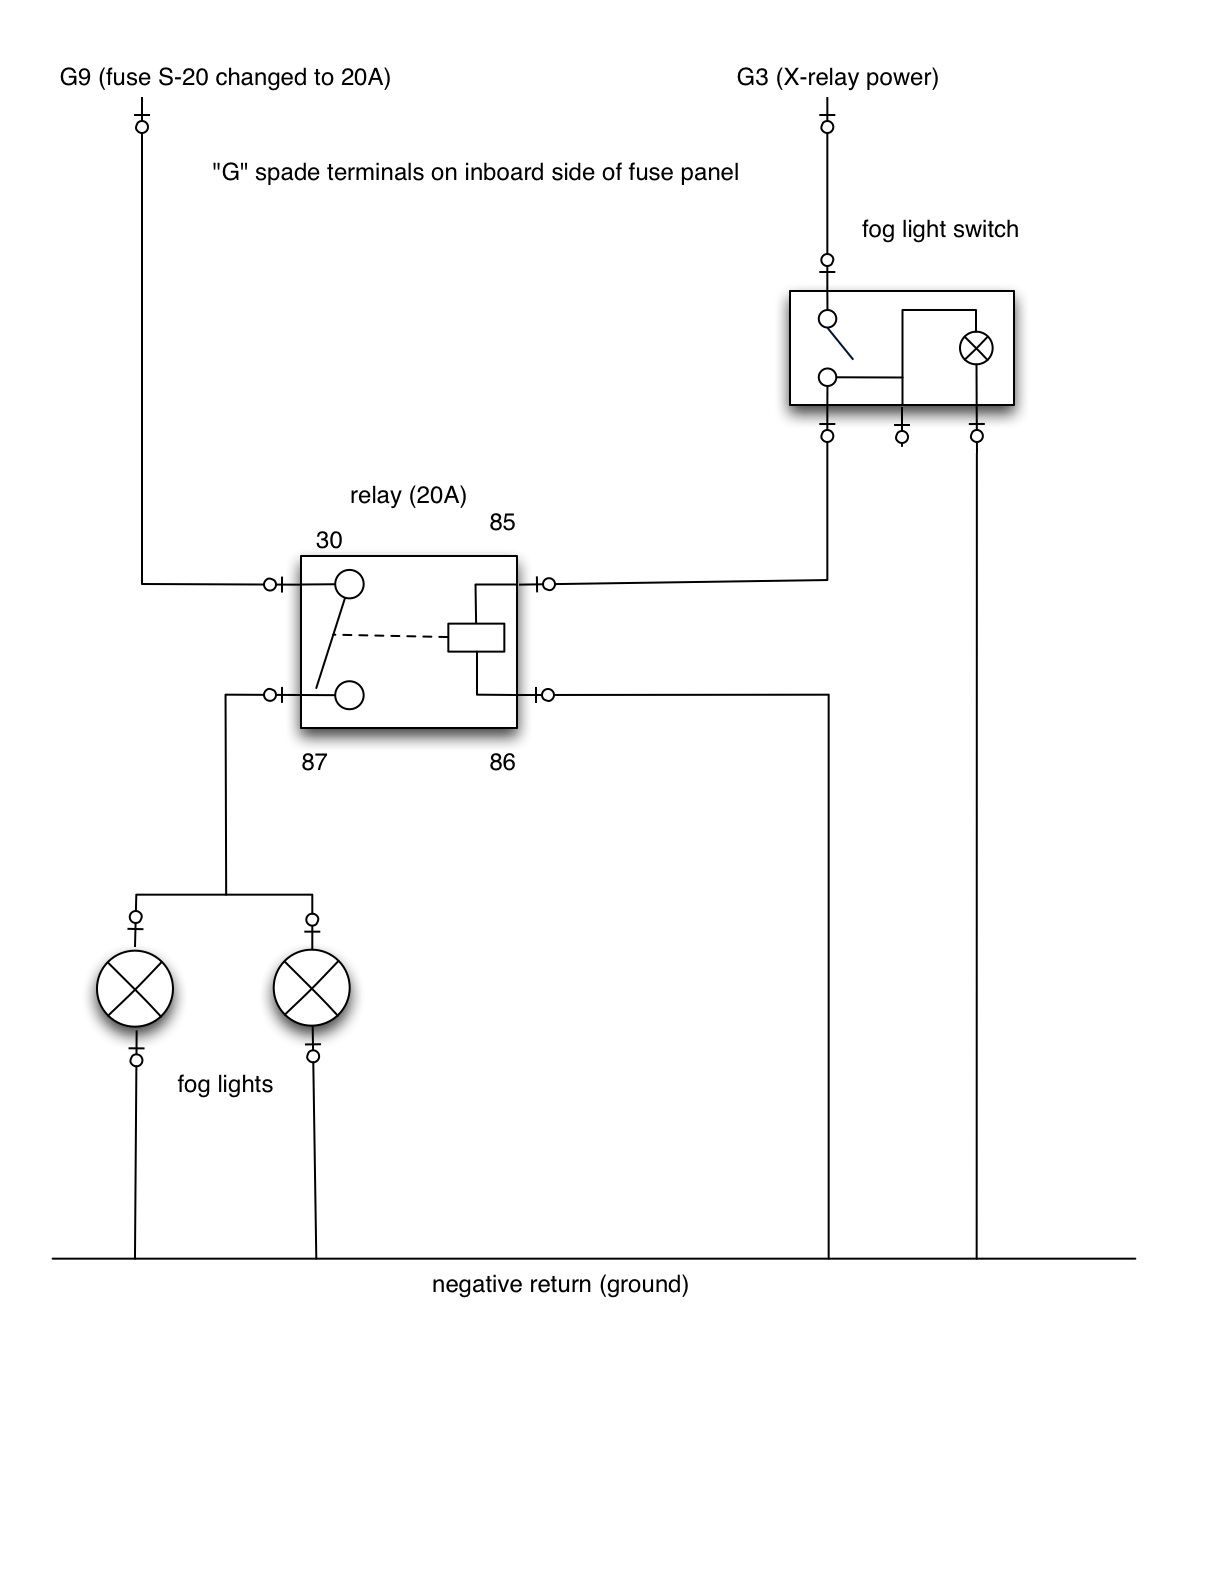 foglight circuit fog light switch wiring diagram auto fog light wiring diagram  at crackthecode.co